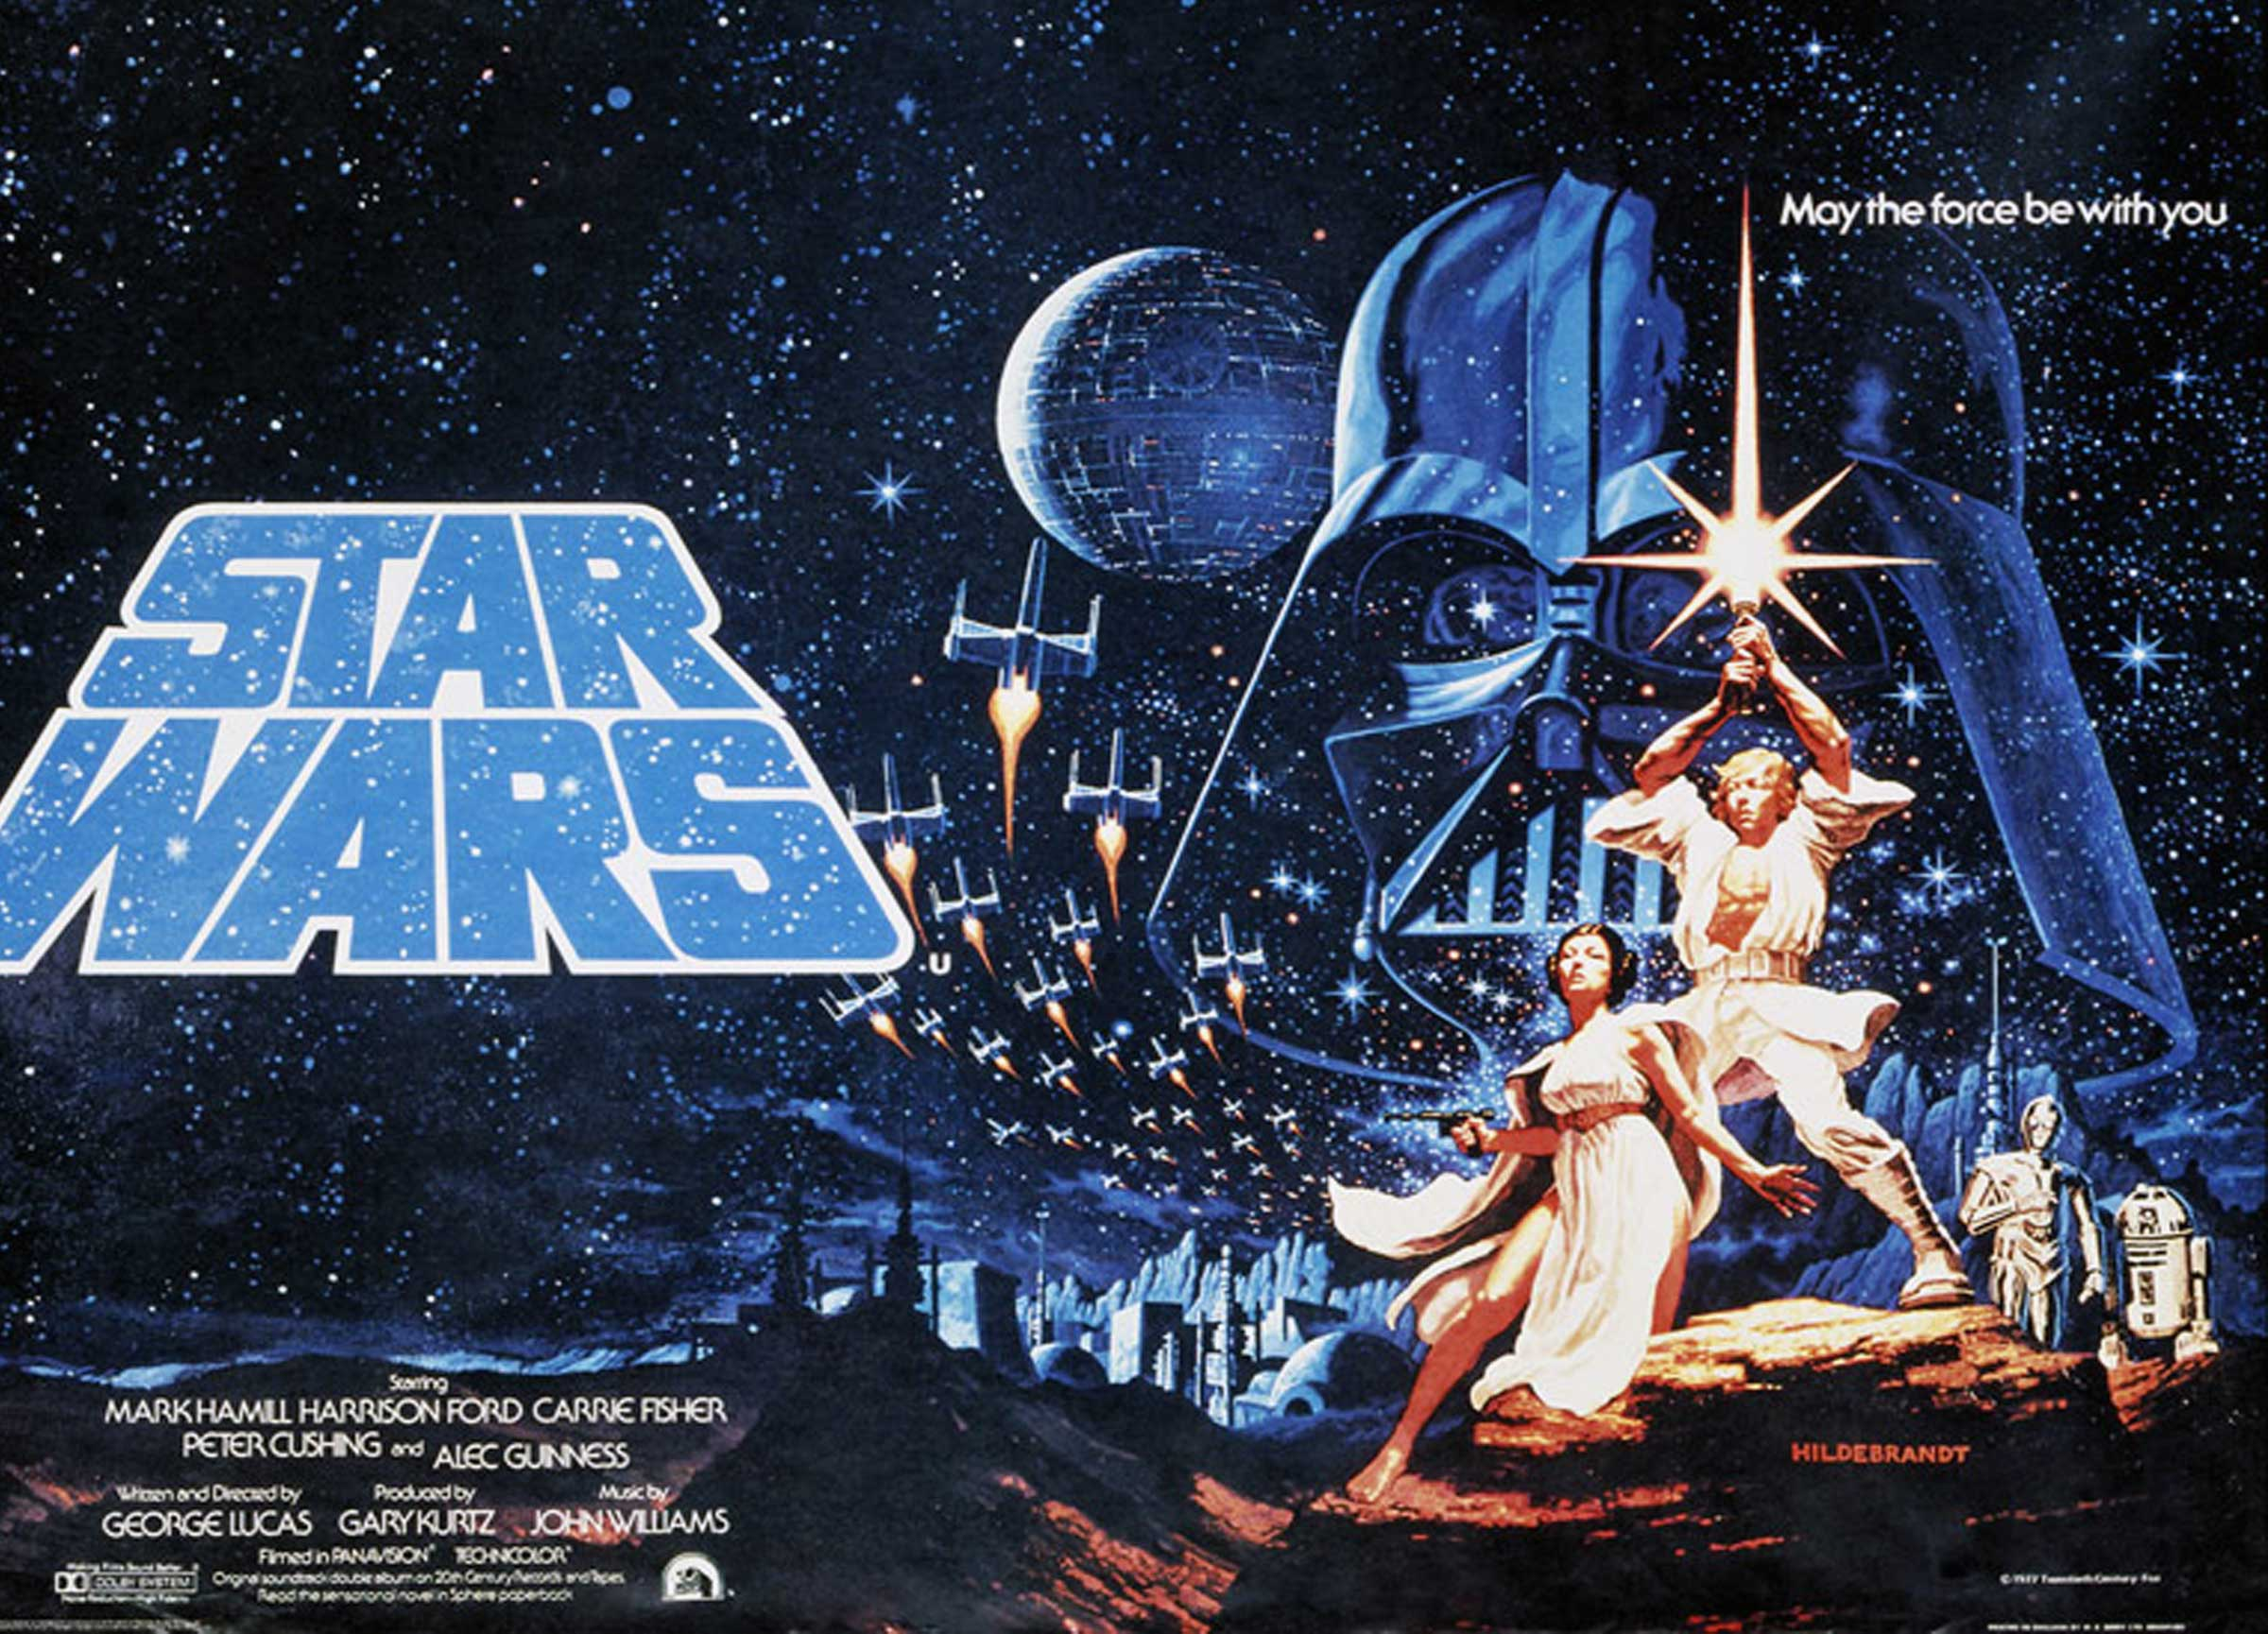 Restored Original 35mm Star Wars Print Released Online | eTeknix